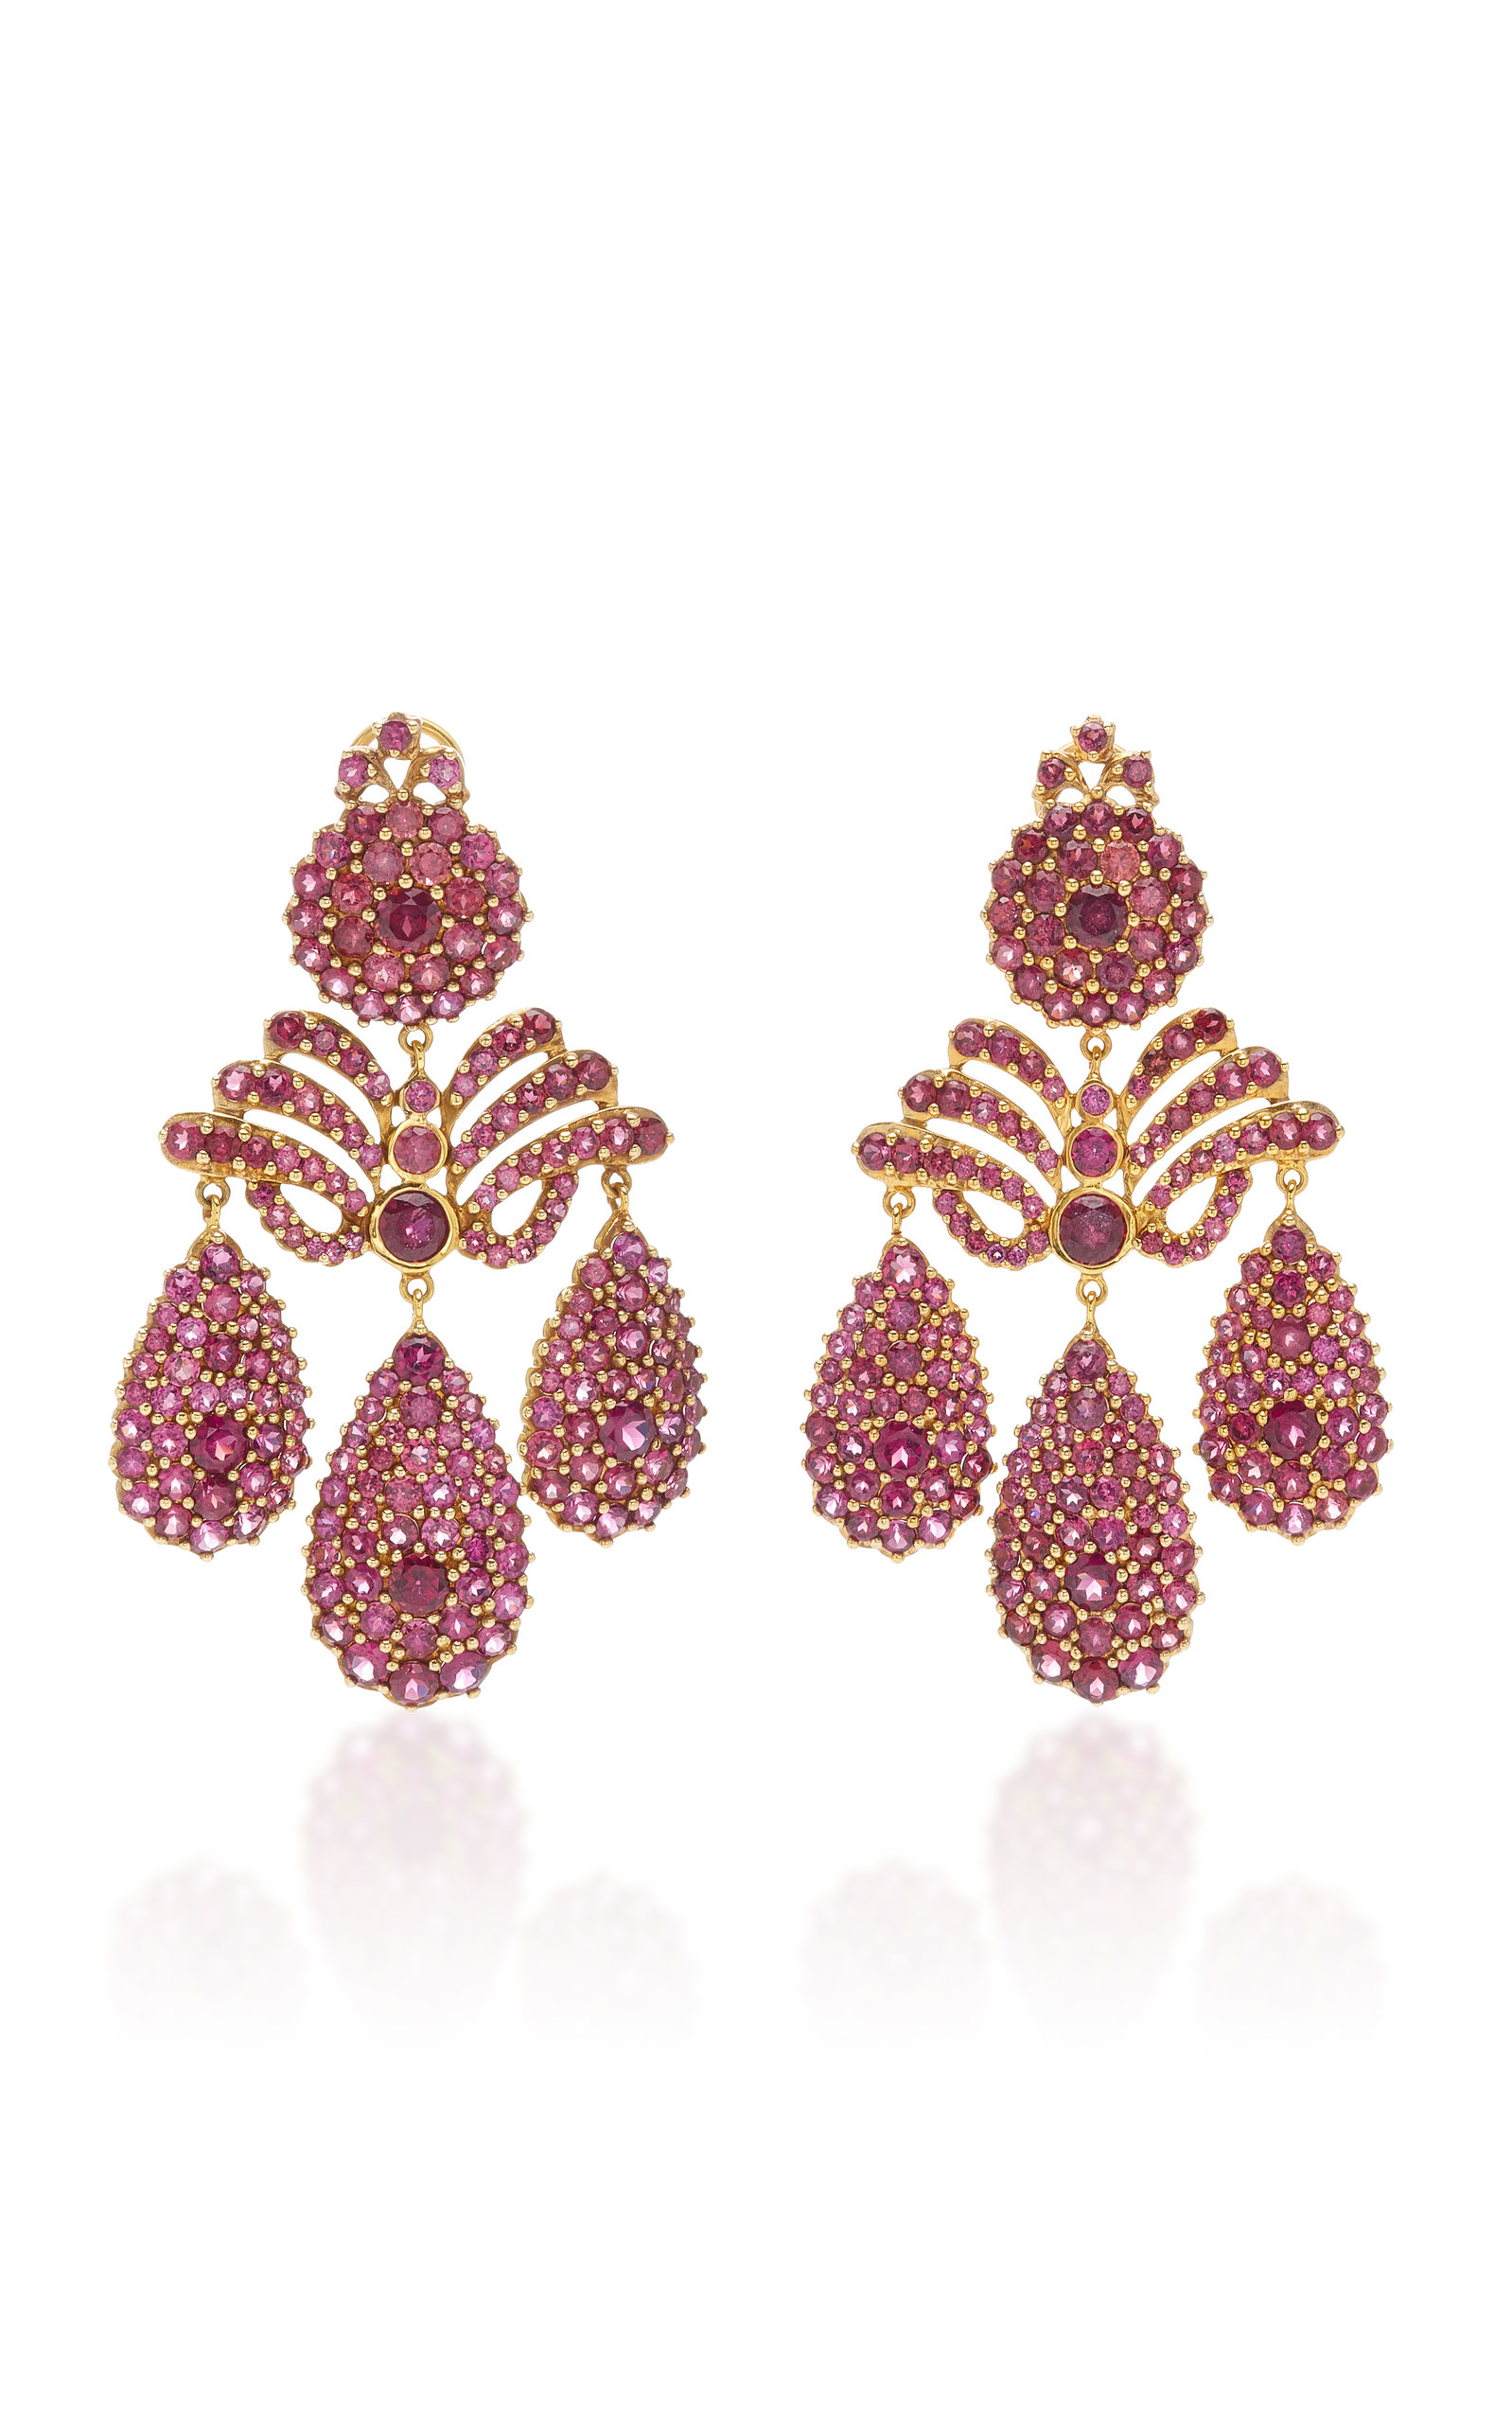 SYLVIE CORBELIN ONE-OF-A-KIND MARQUISE PALACE EARRINGS